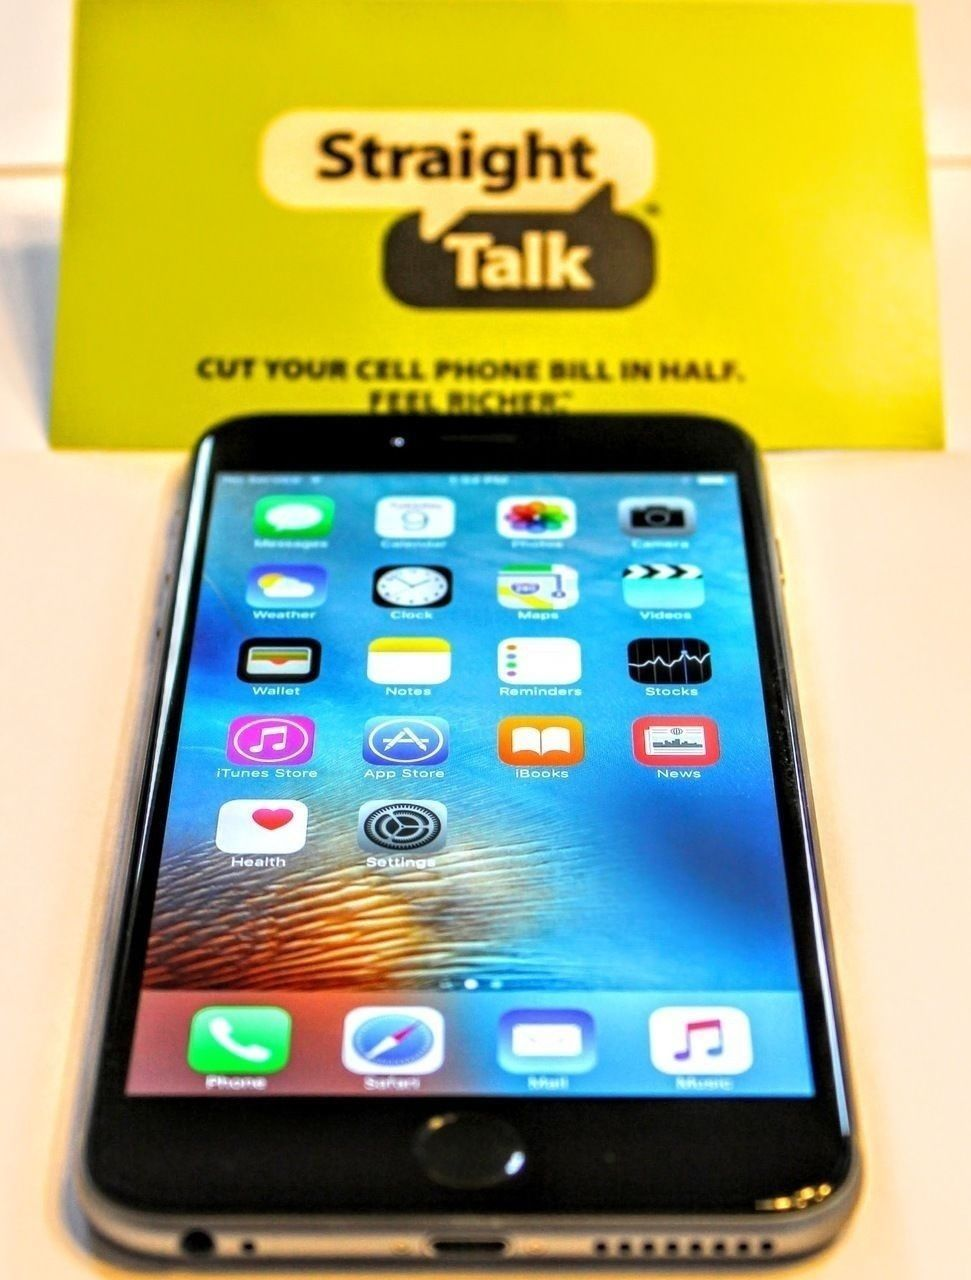 Apple Iphone 6 Plus 16gb 64gb Space Gray Straight Talk Smartphone Apple Iphone 6 Iphone 6 Plus Smartphone